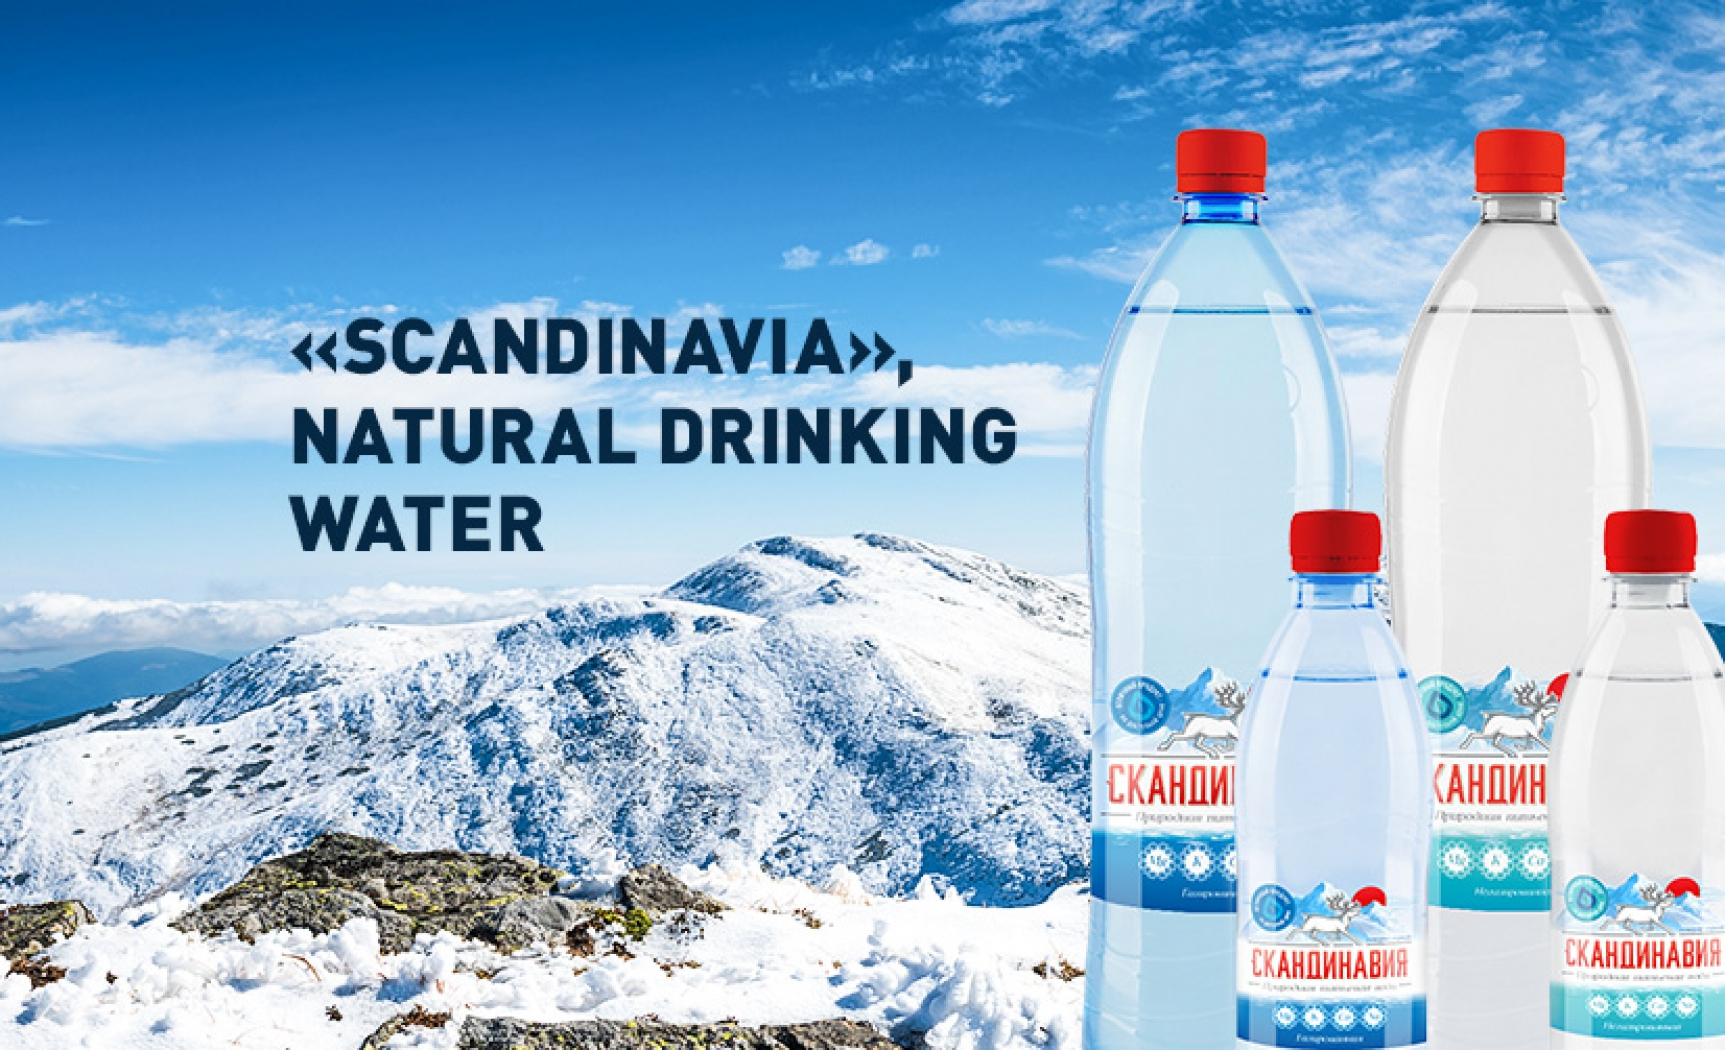 Scandinavia, Natural drinking water